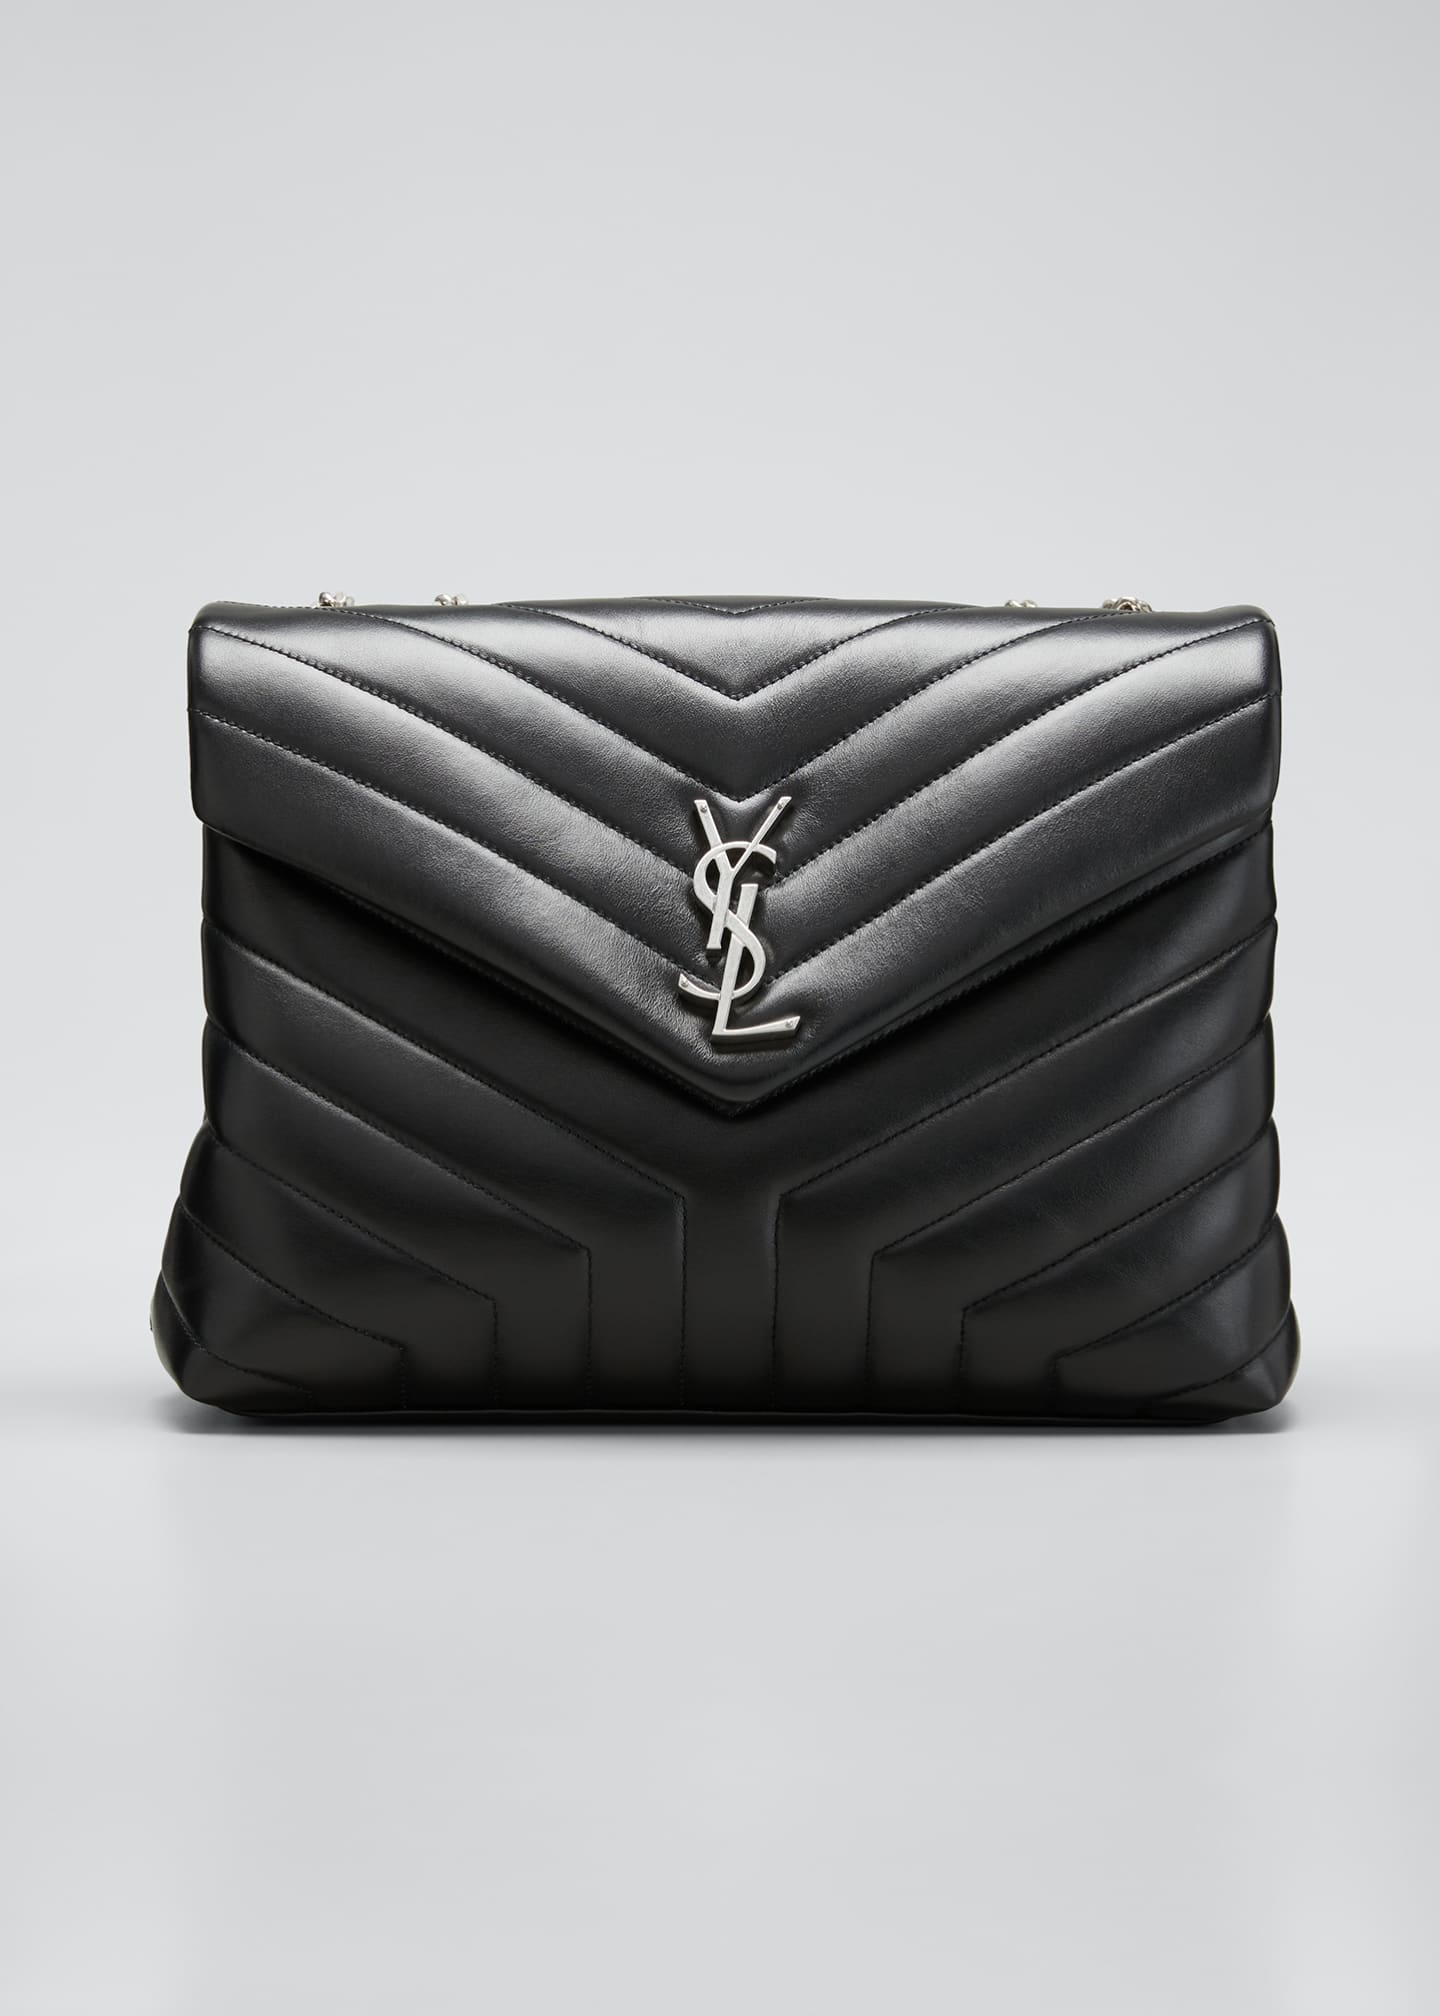 Image 1 of 1: Loulou Medium YSL Matelasse Calfskin Flap-Top Shoulder Bag